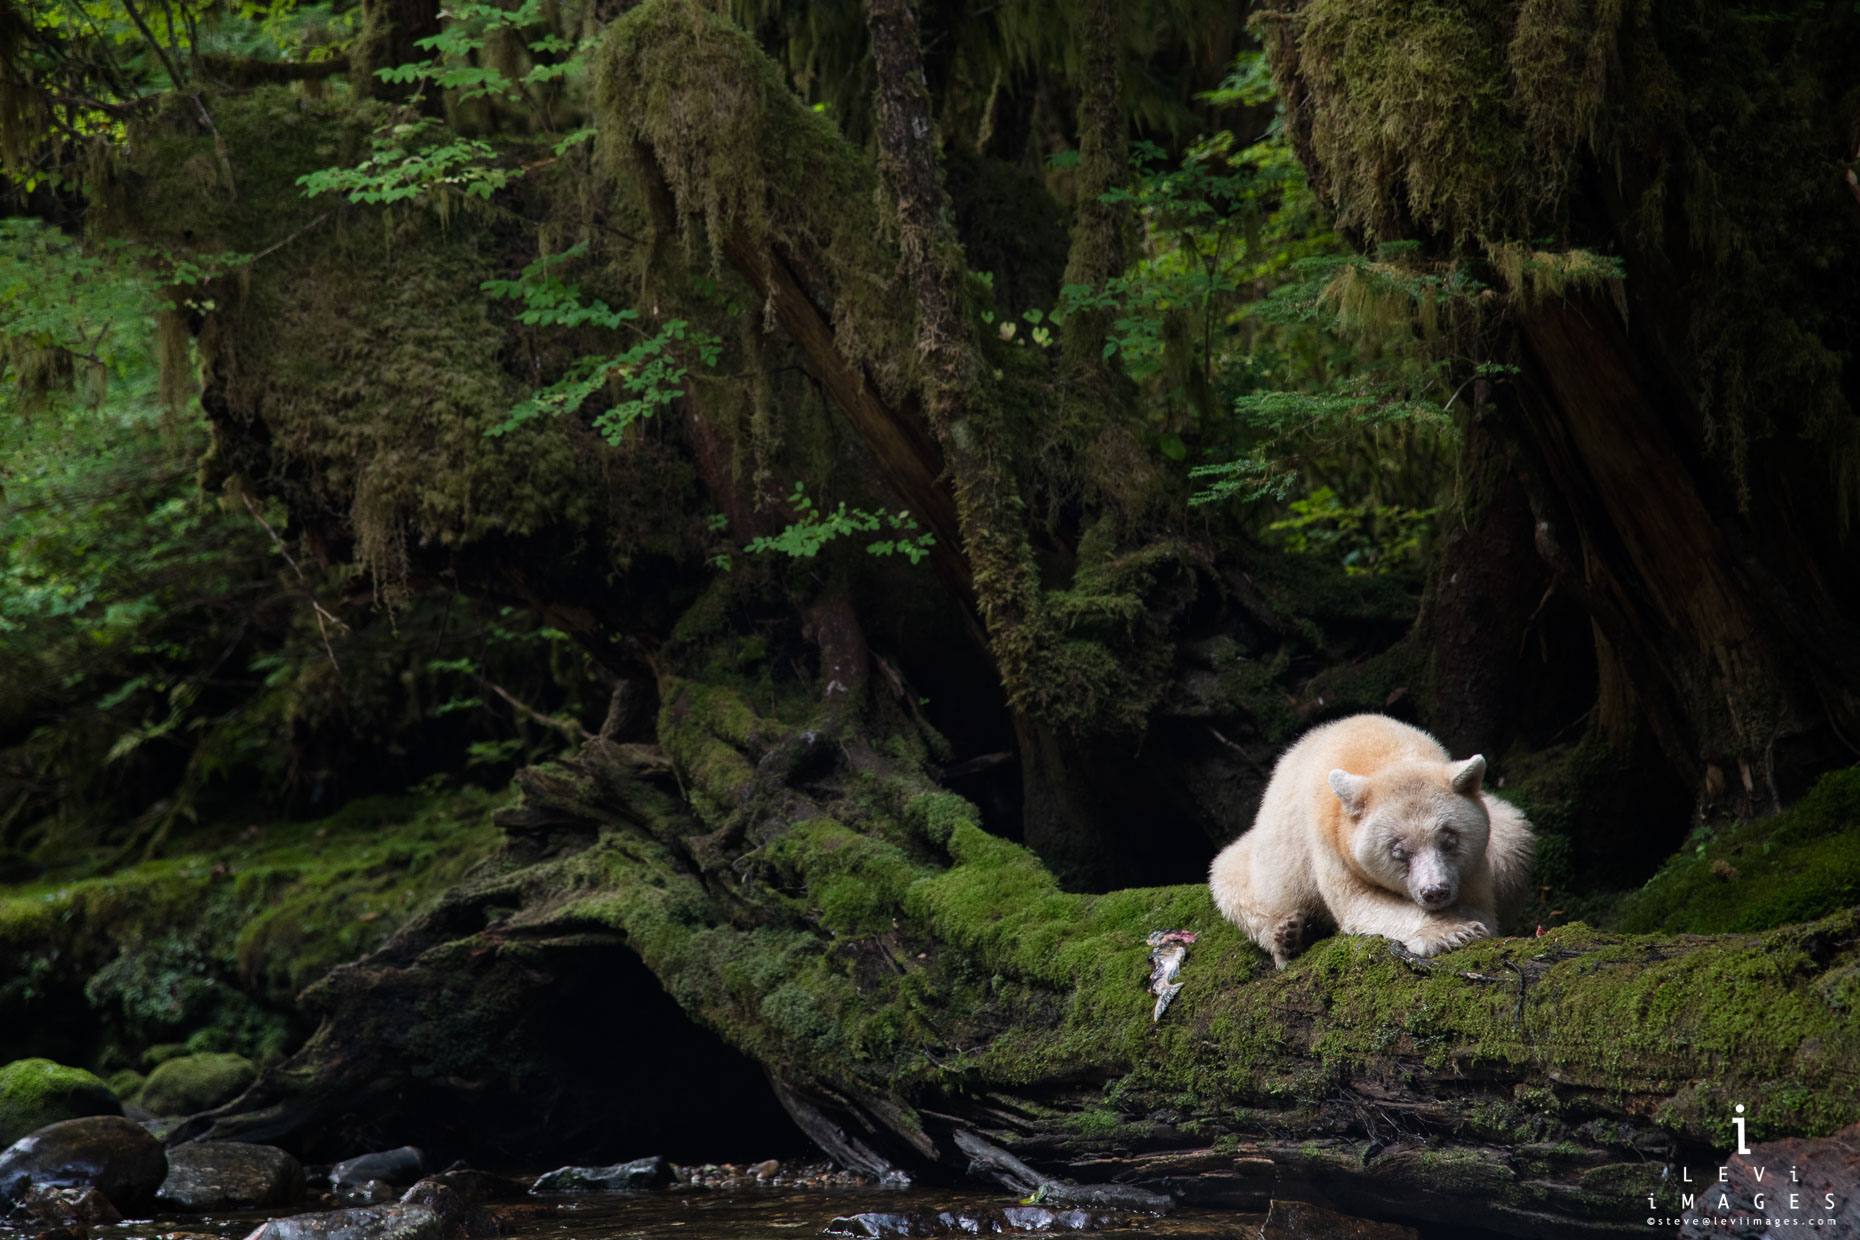 A Spirit bear lies on moss-covered log, Great Bear Rainforest, British Columbia Canada